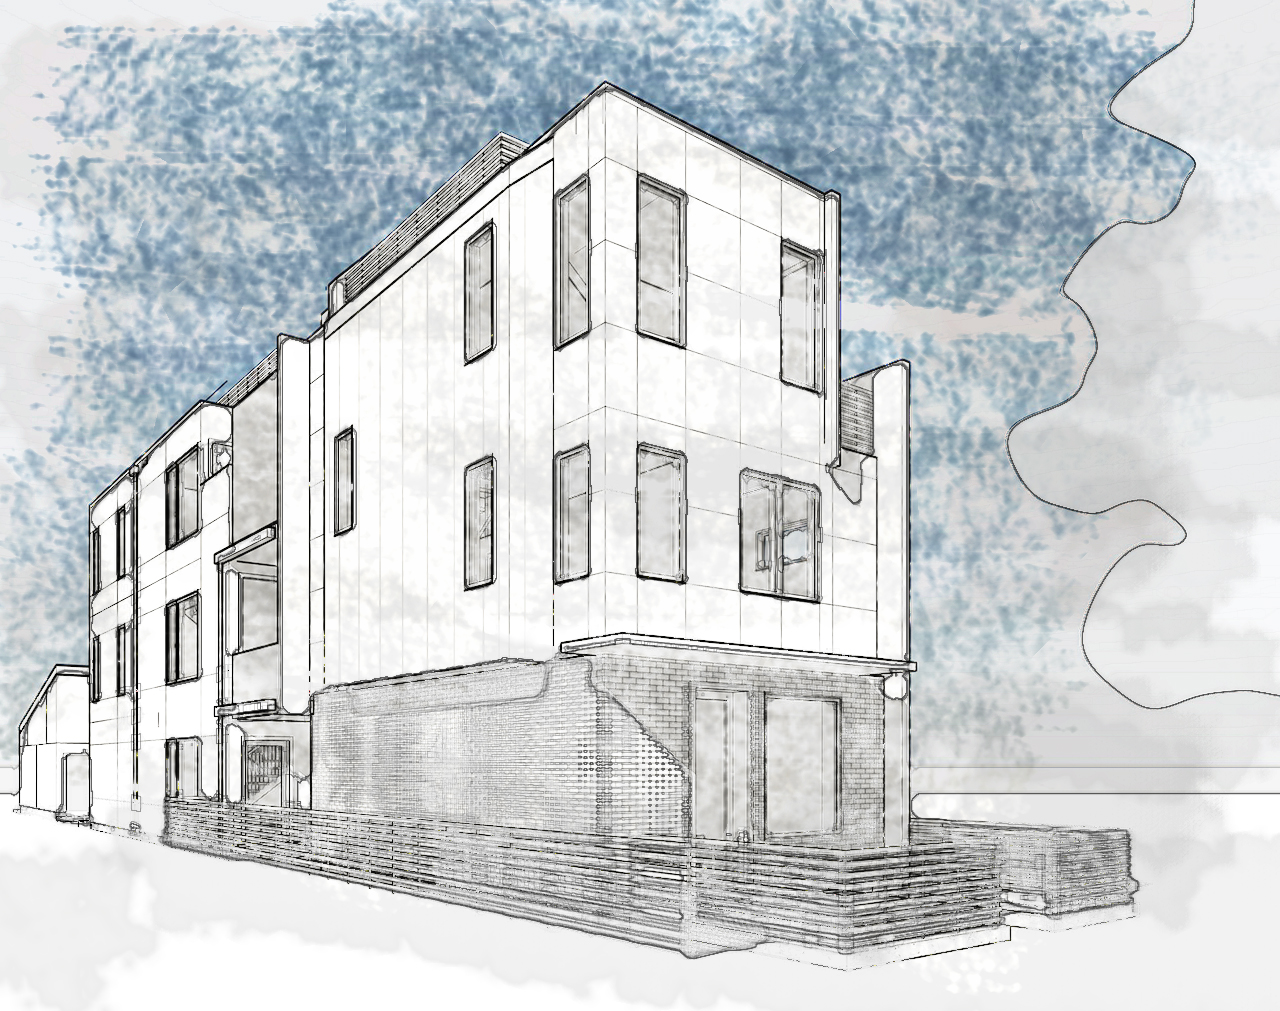 LAWRENCE STREET TOWNHOMES